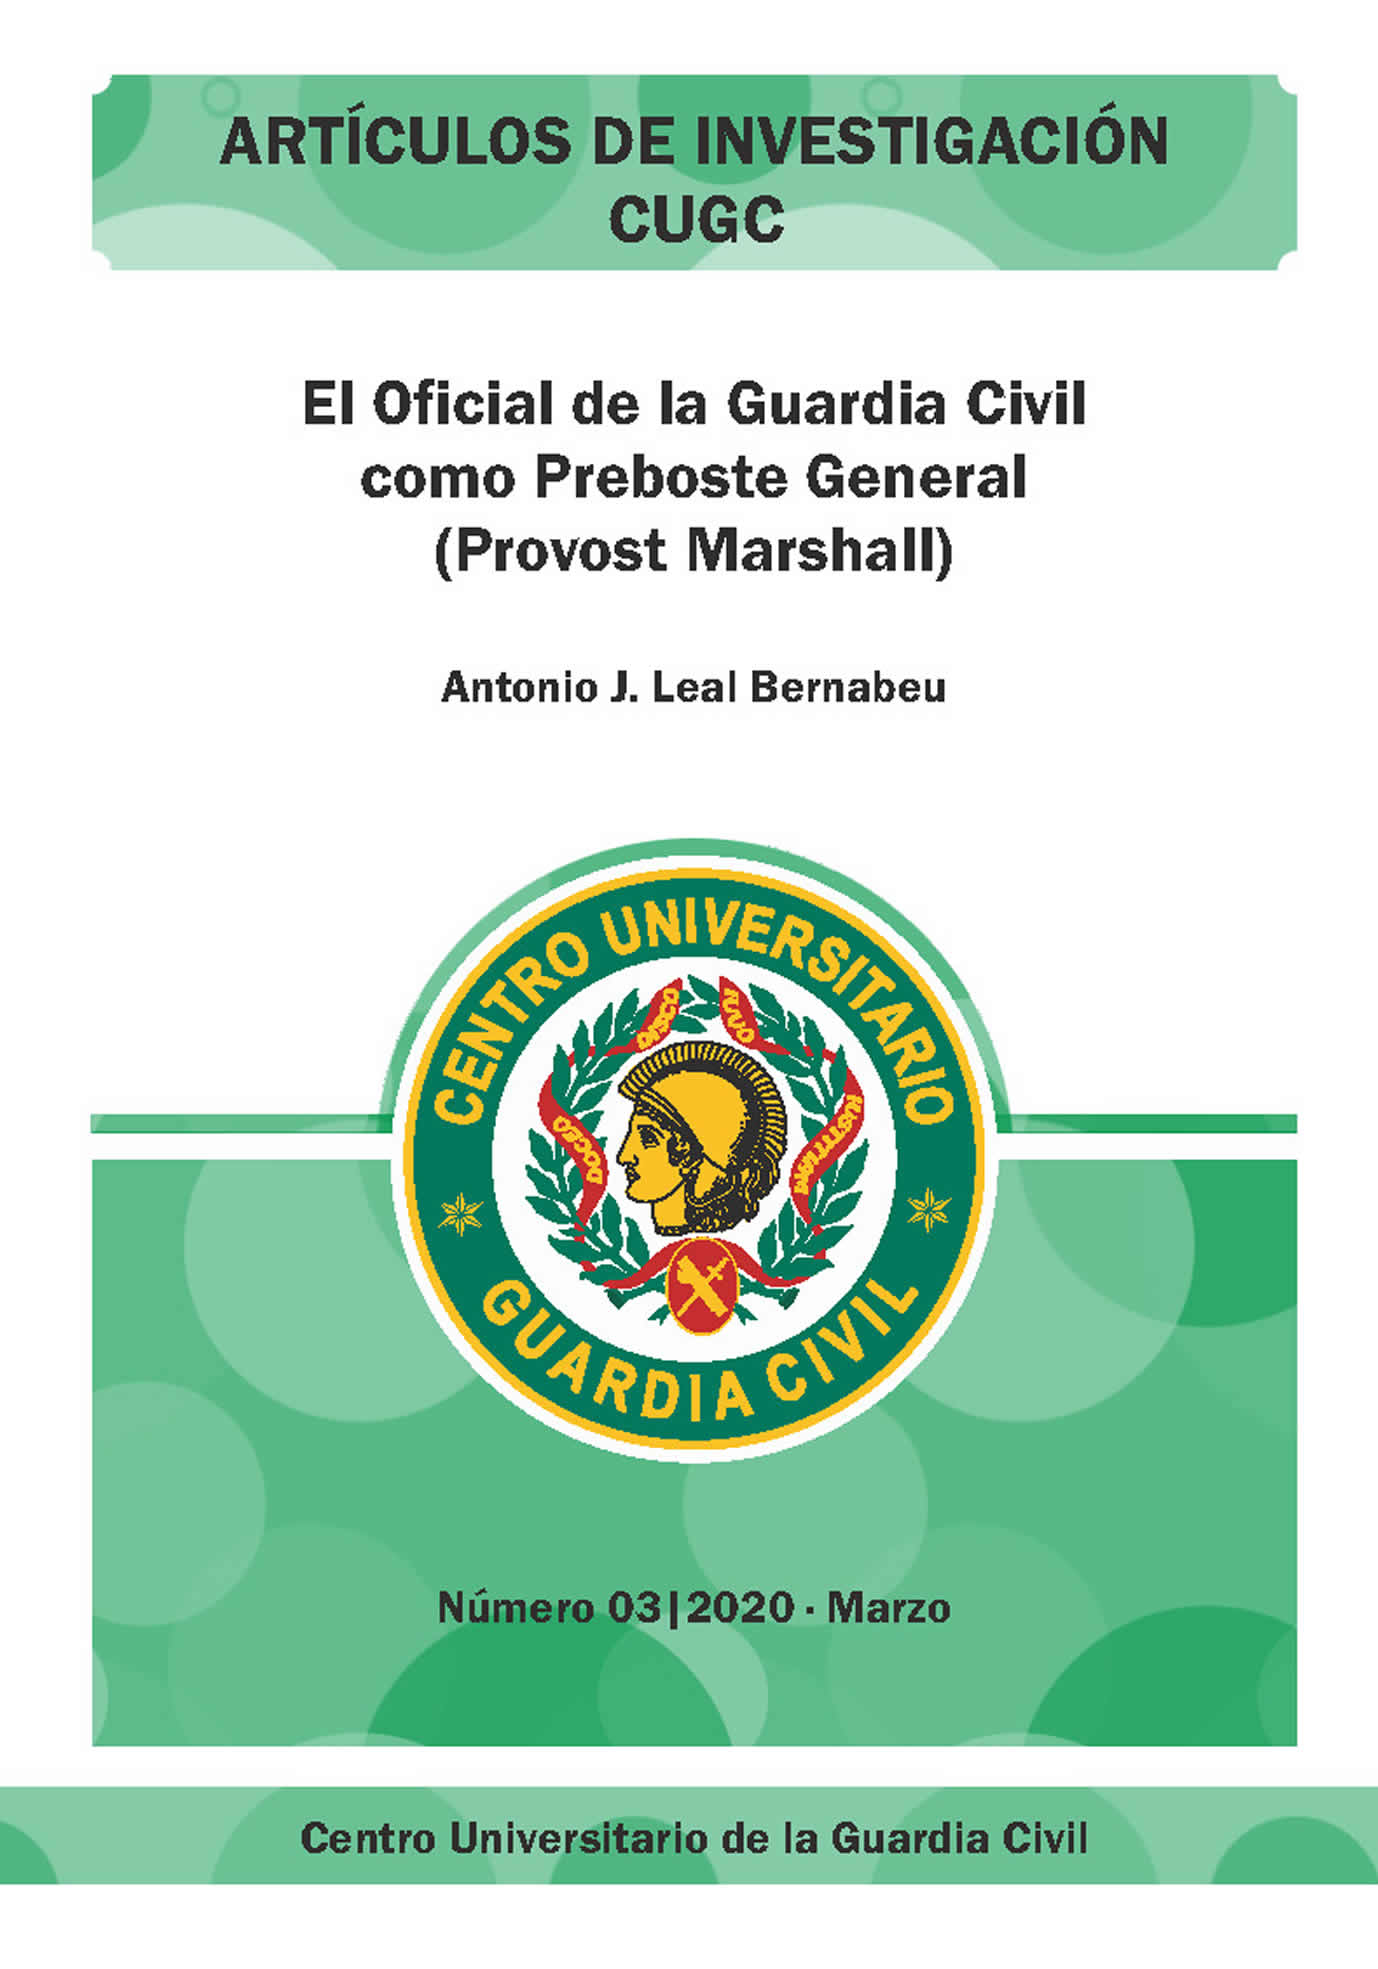 El Oficial de la Guardia Civil como Preboste General (Provost Marshall)